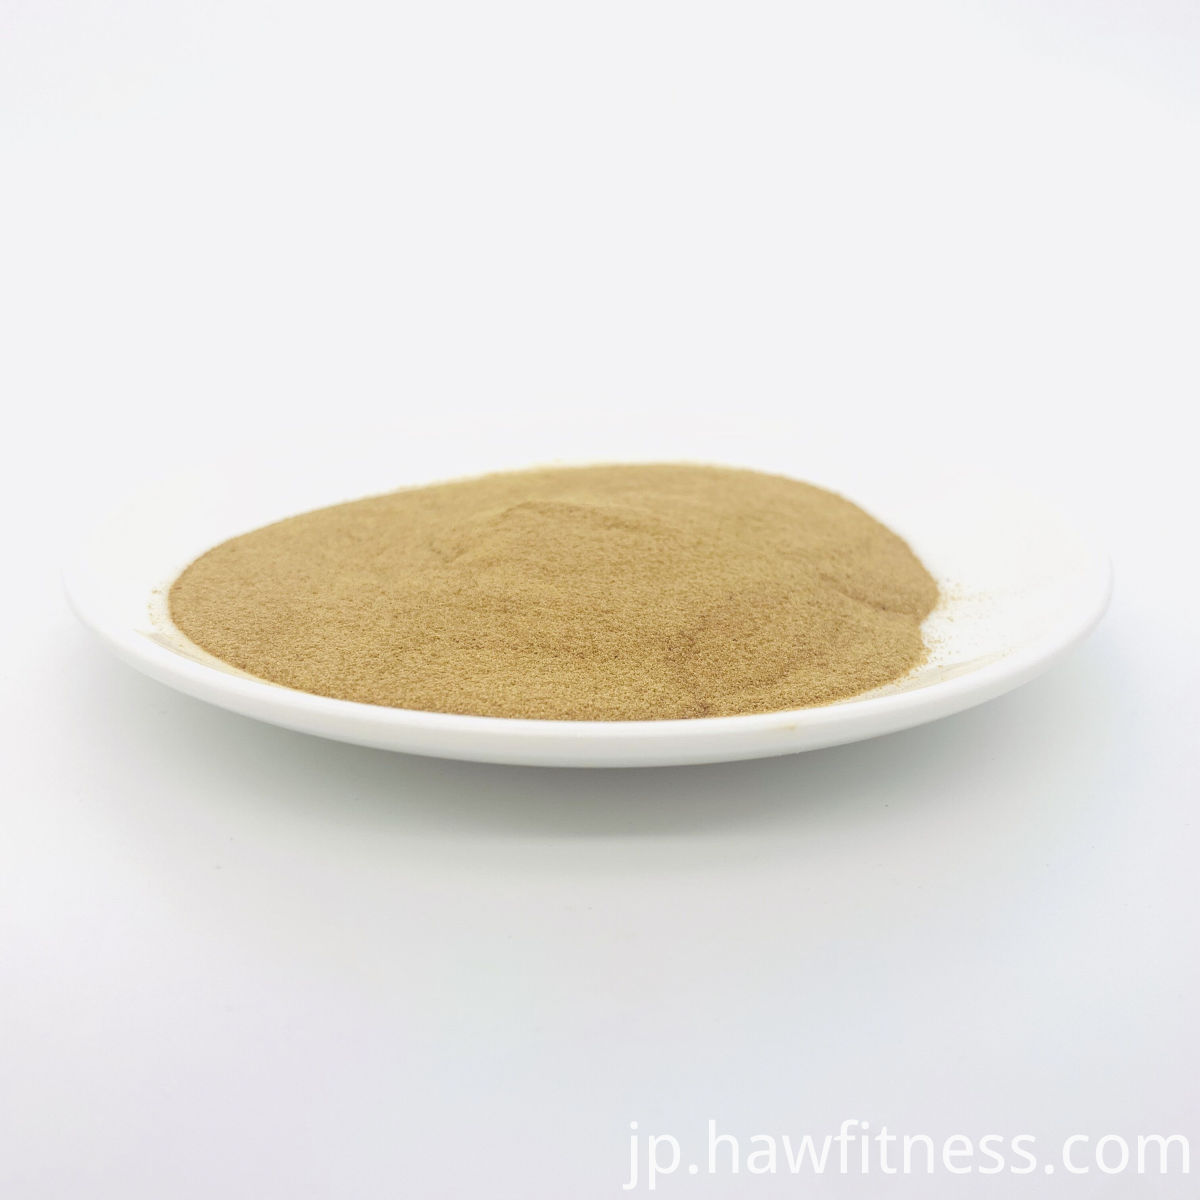 Water-soluble Orange Peel Extract